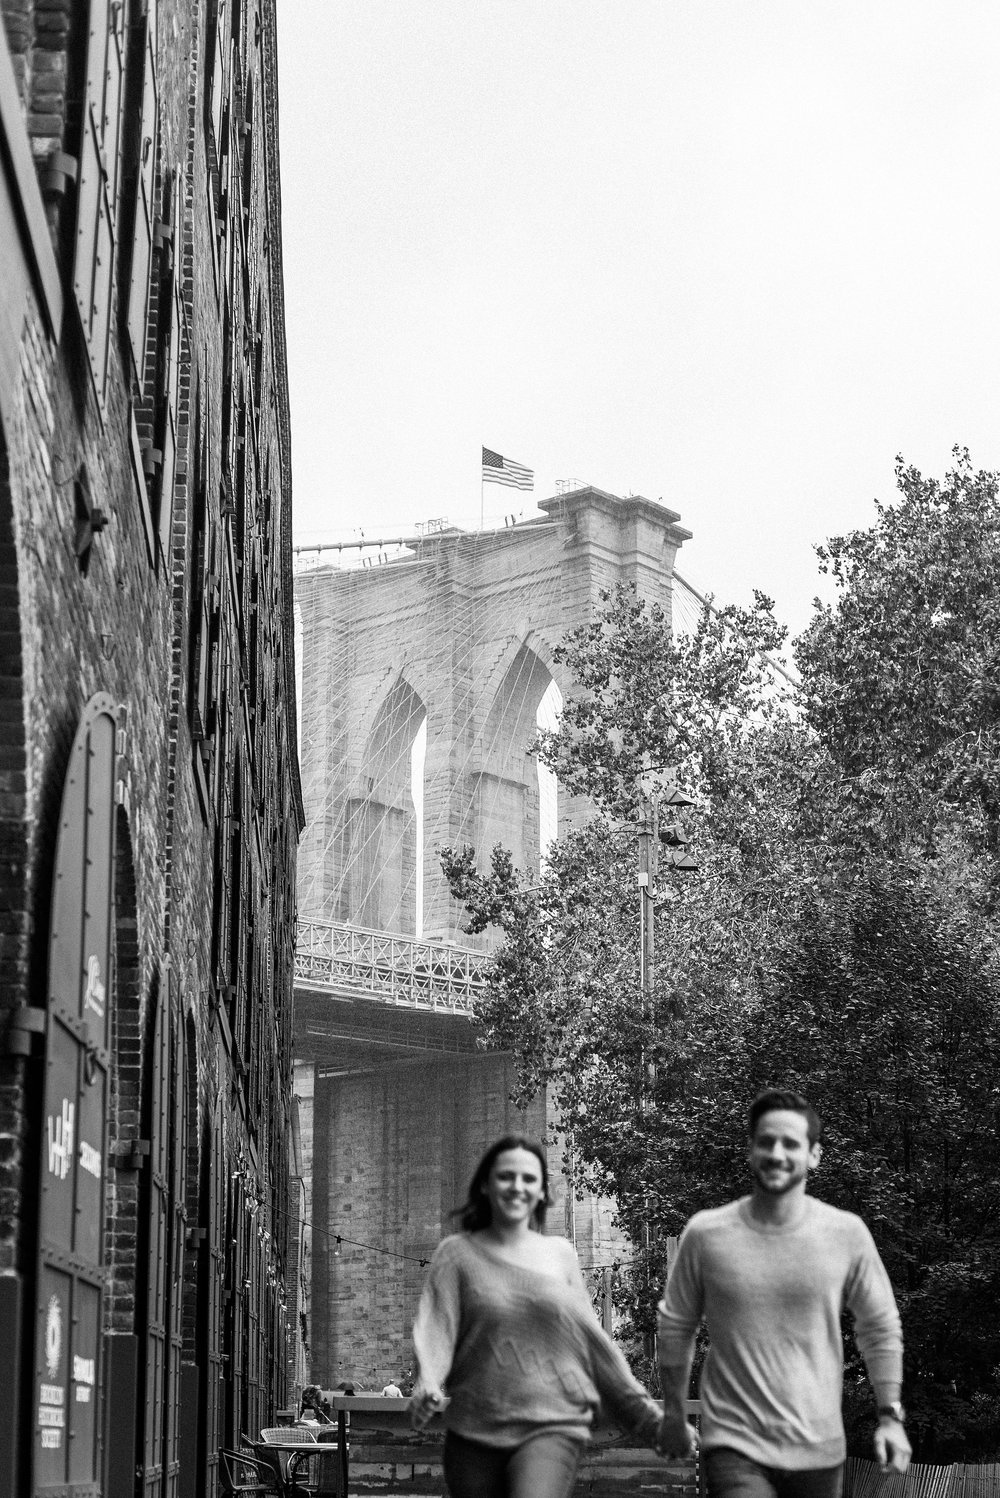 dumbo-brooklyn-engagement-session_3966.jpg